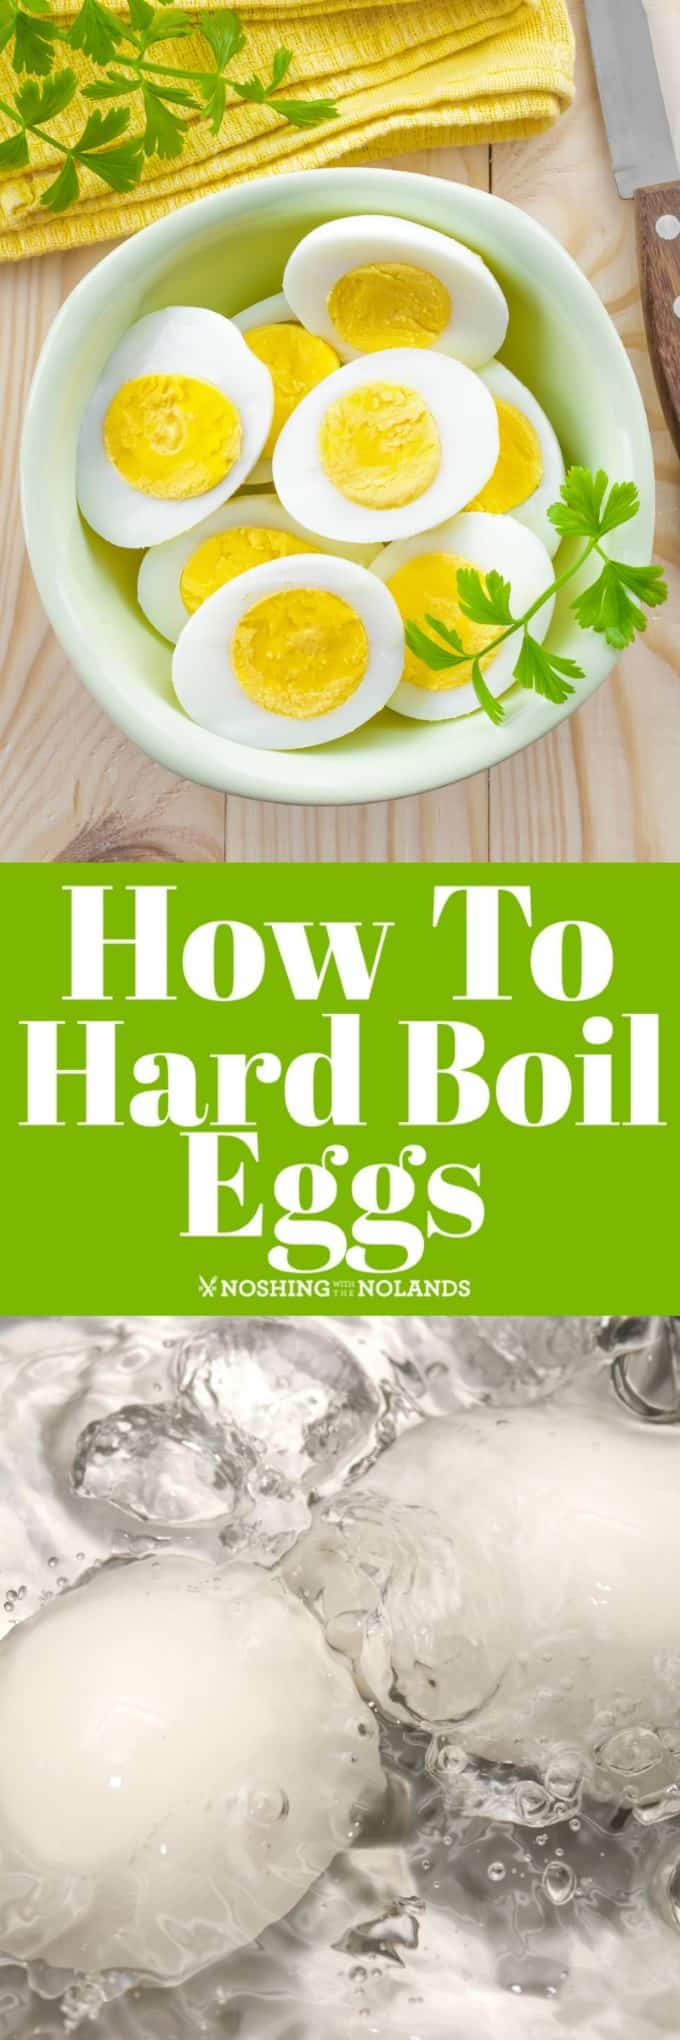 How to Hard Boil Eggs is simple and easy if you follow our tips and tricks to get that perfectly cooked yolk!! #hardboiledeggs #eggs